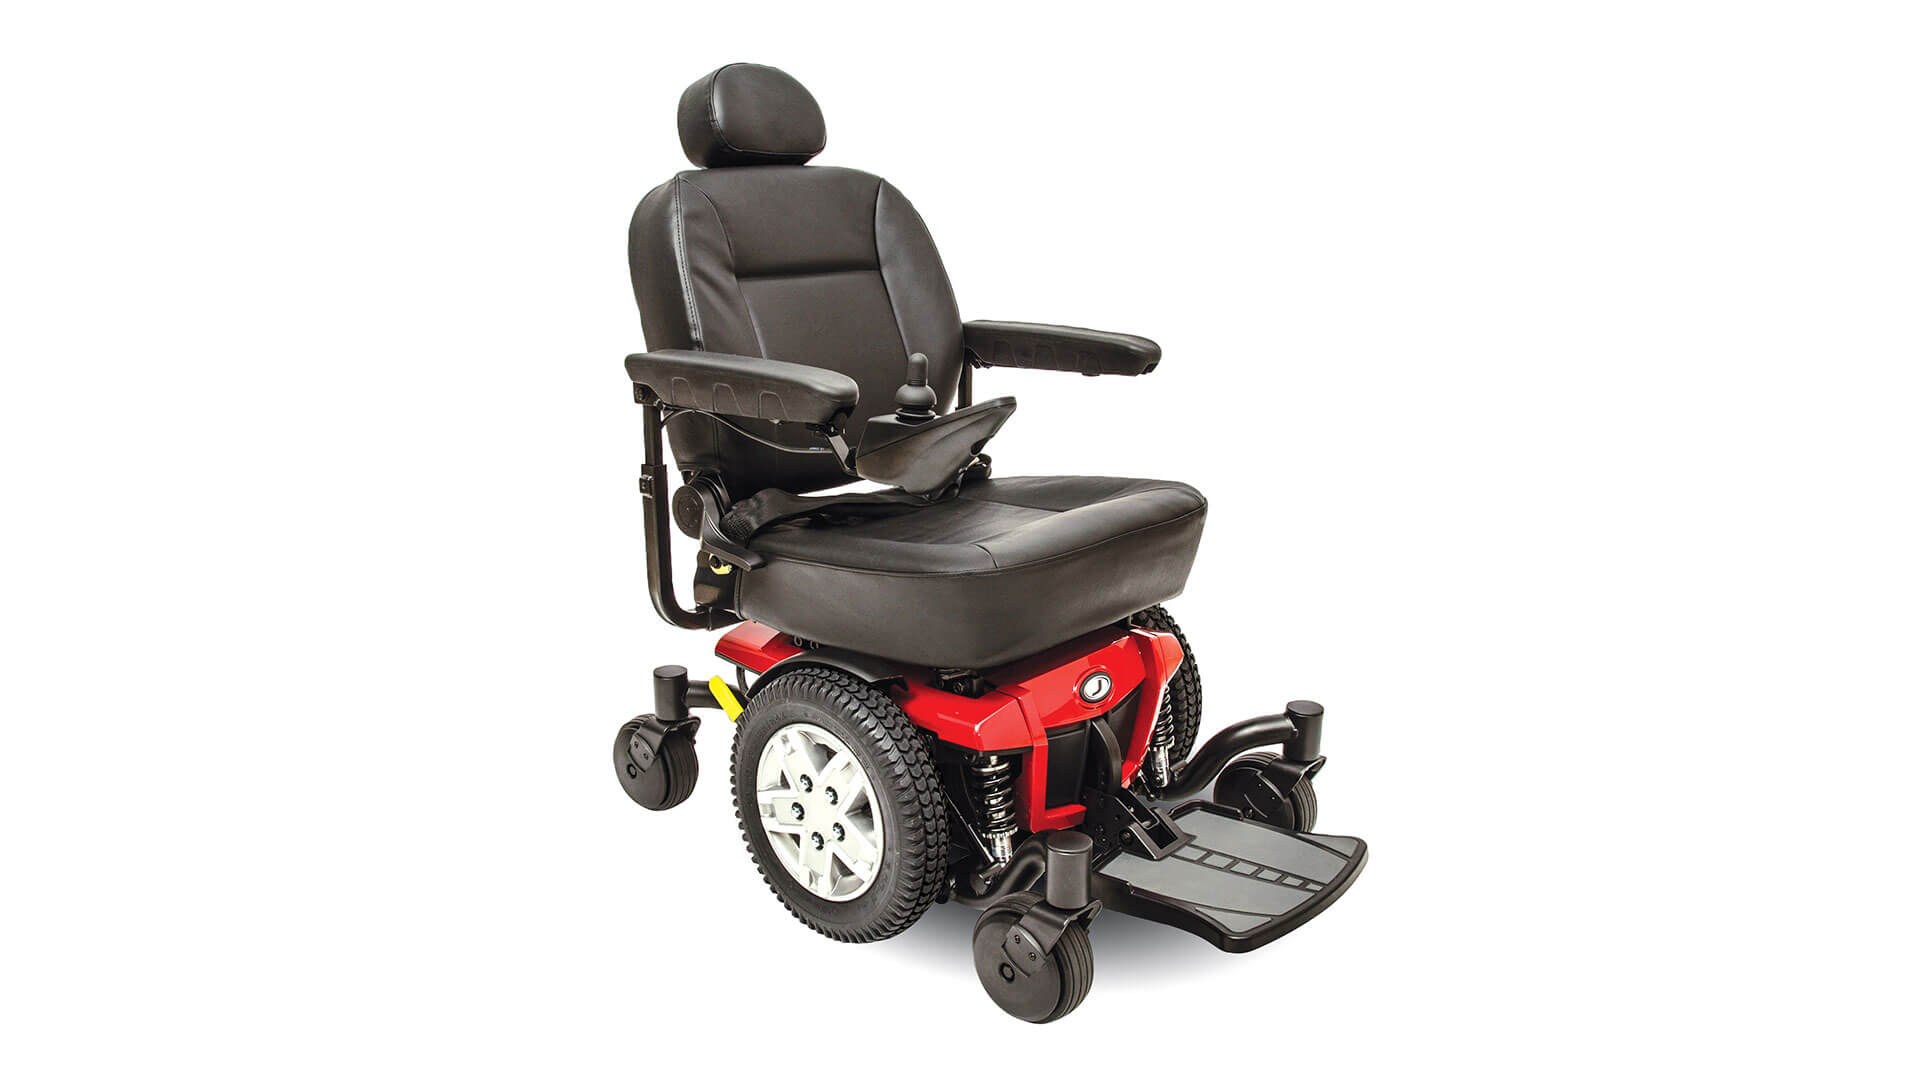 Best wheelchairs brands Jazzy 600